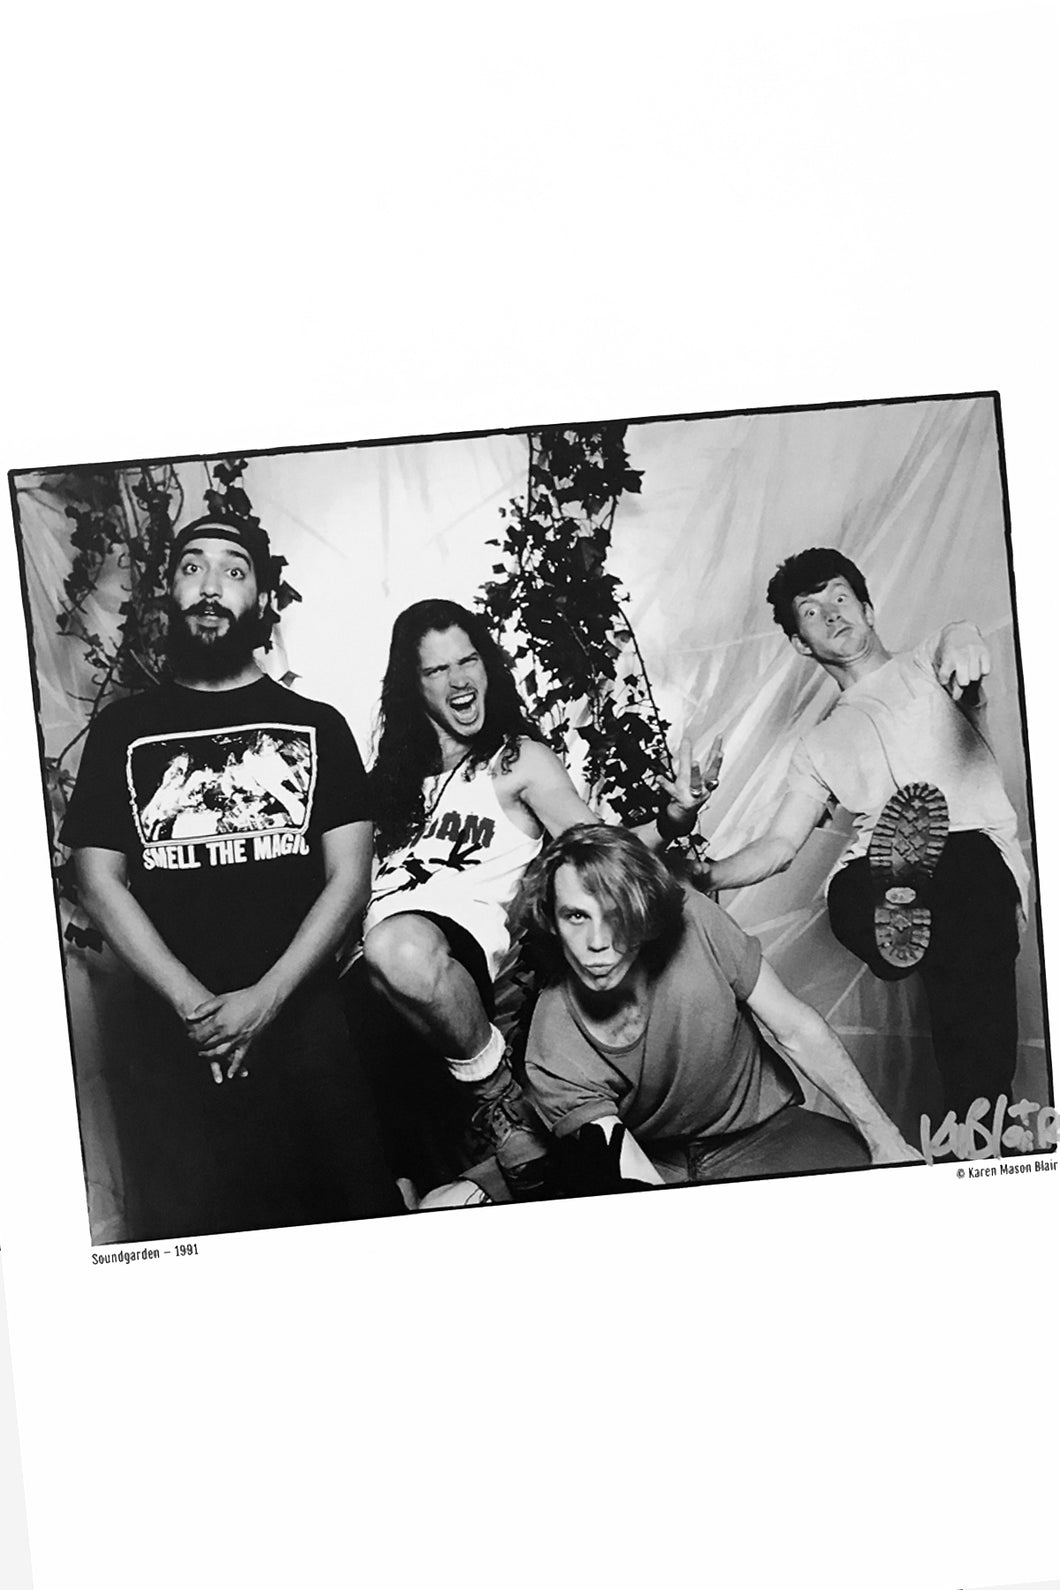 Soundgarden photo 8x10 signed  old school promo 1991